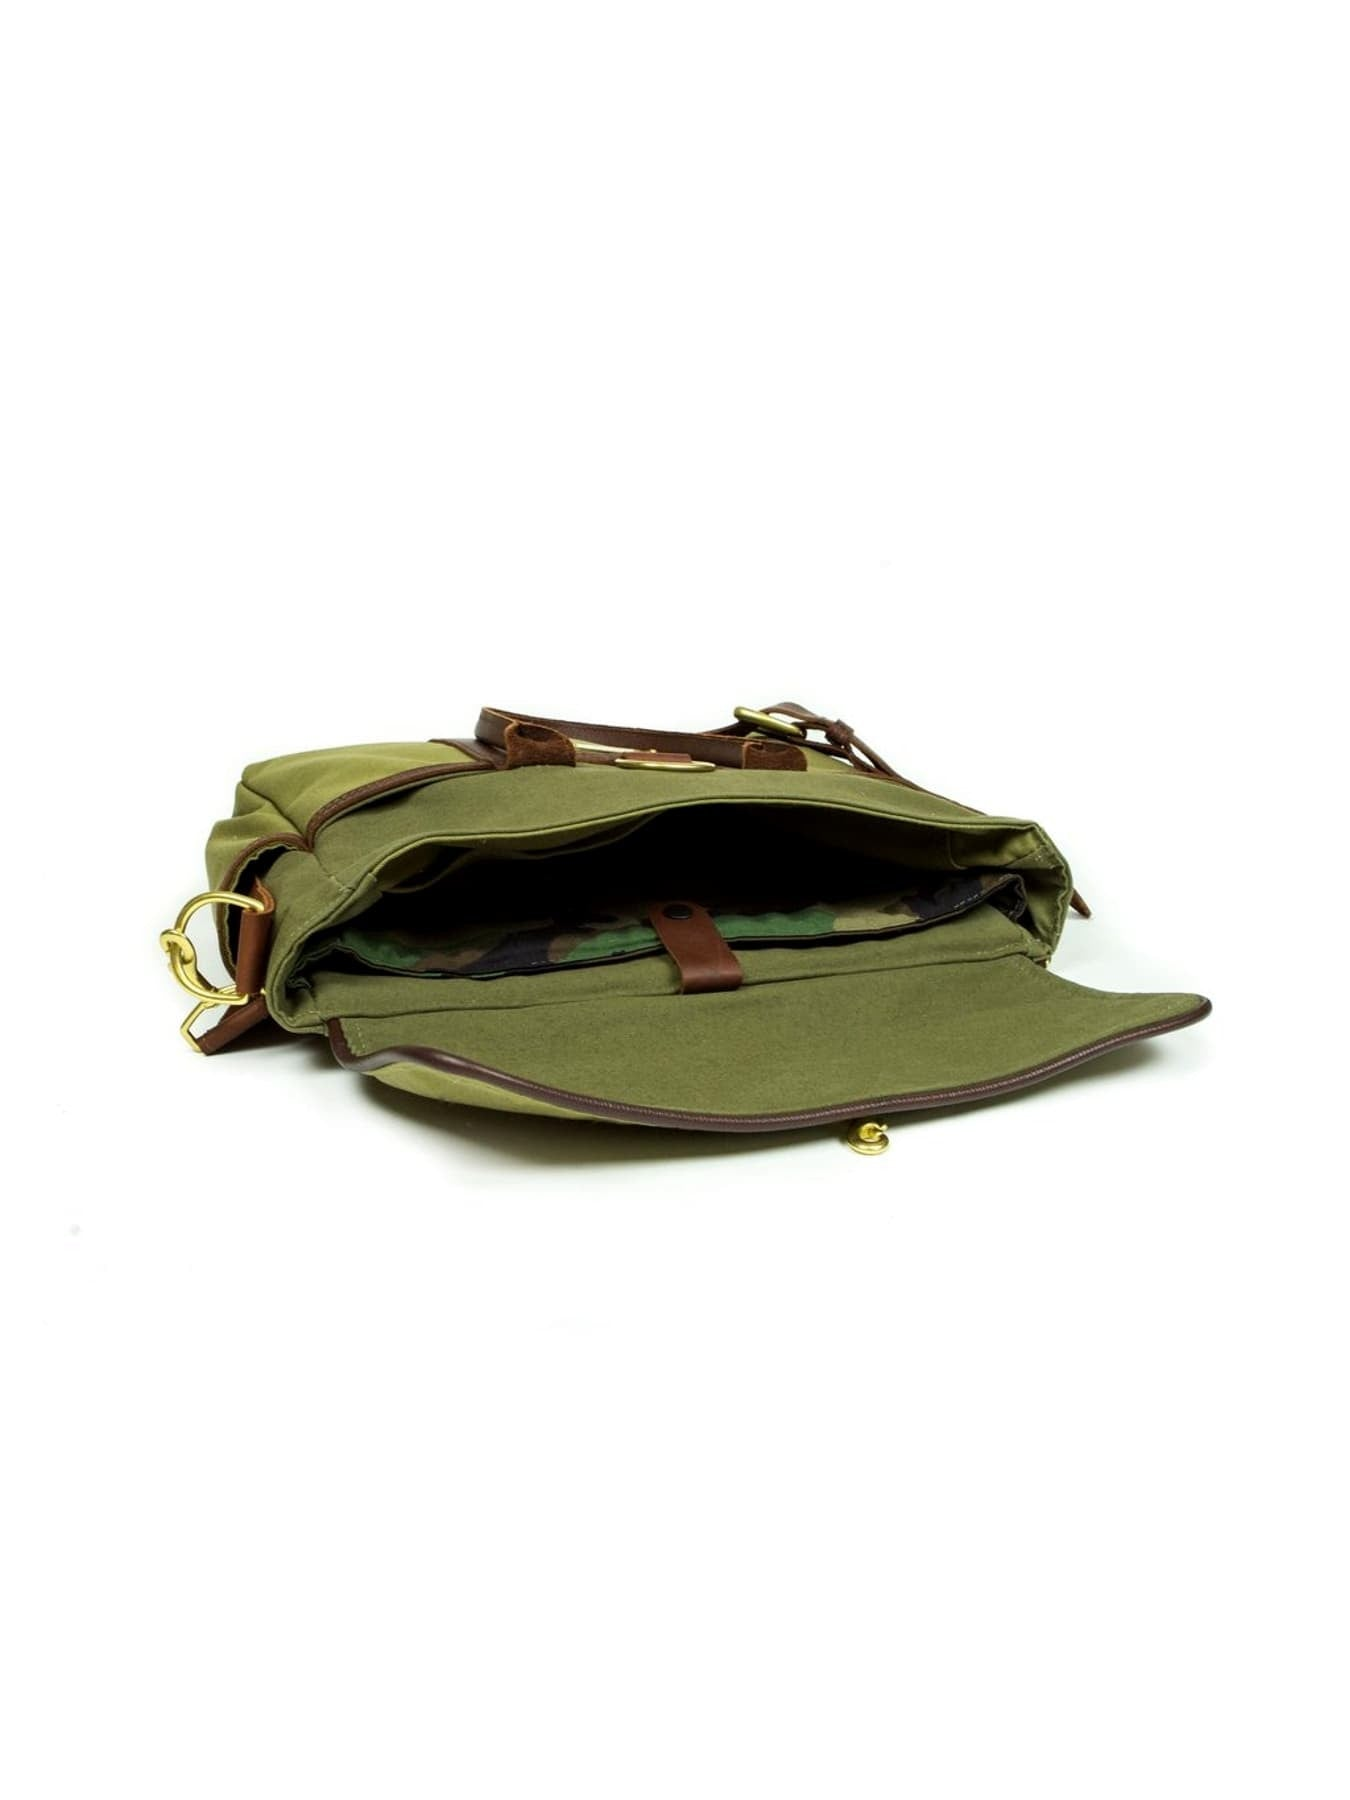 Green Canvas Messenger Bag